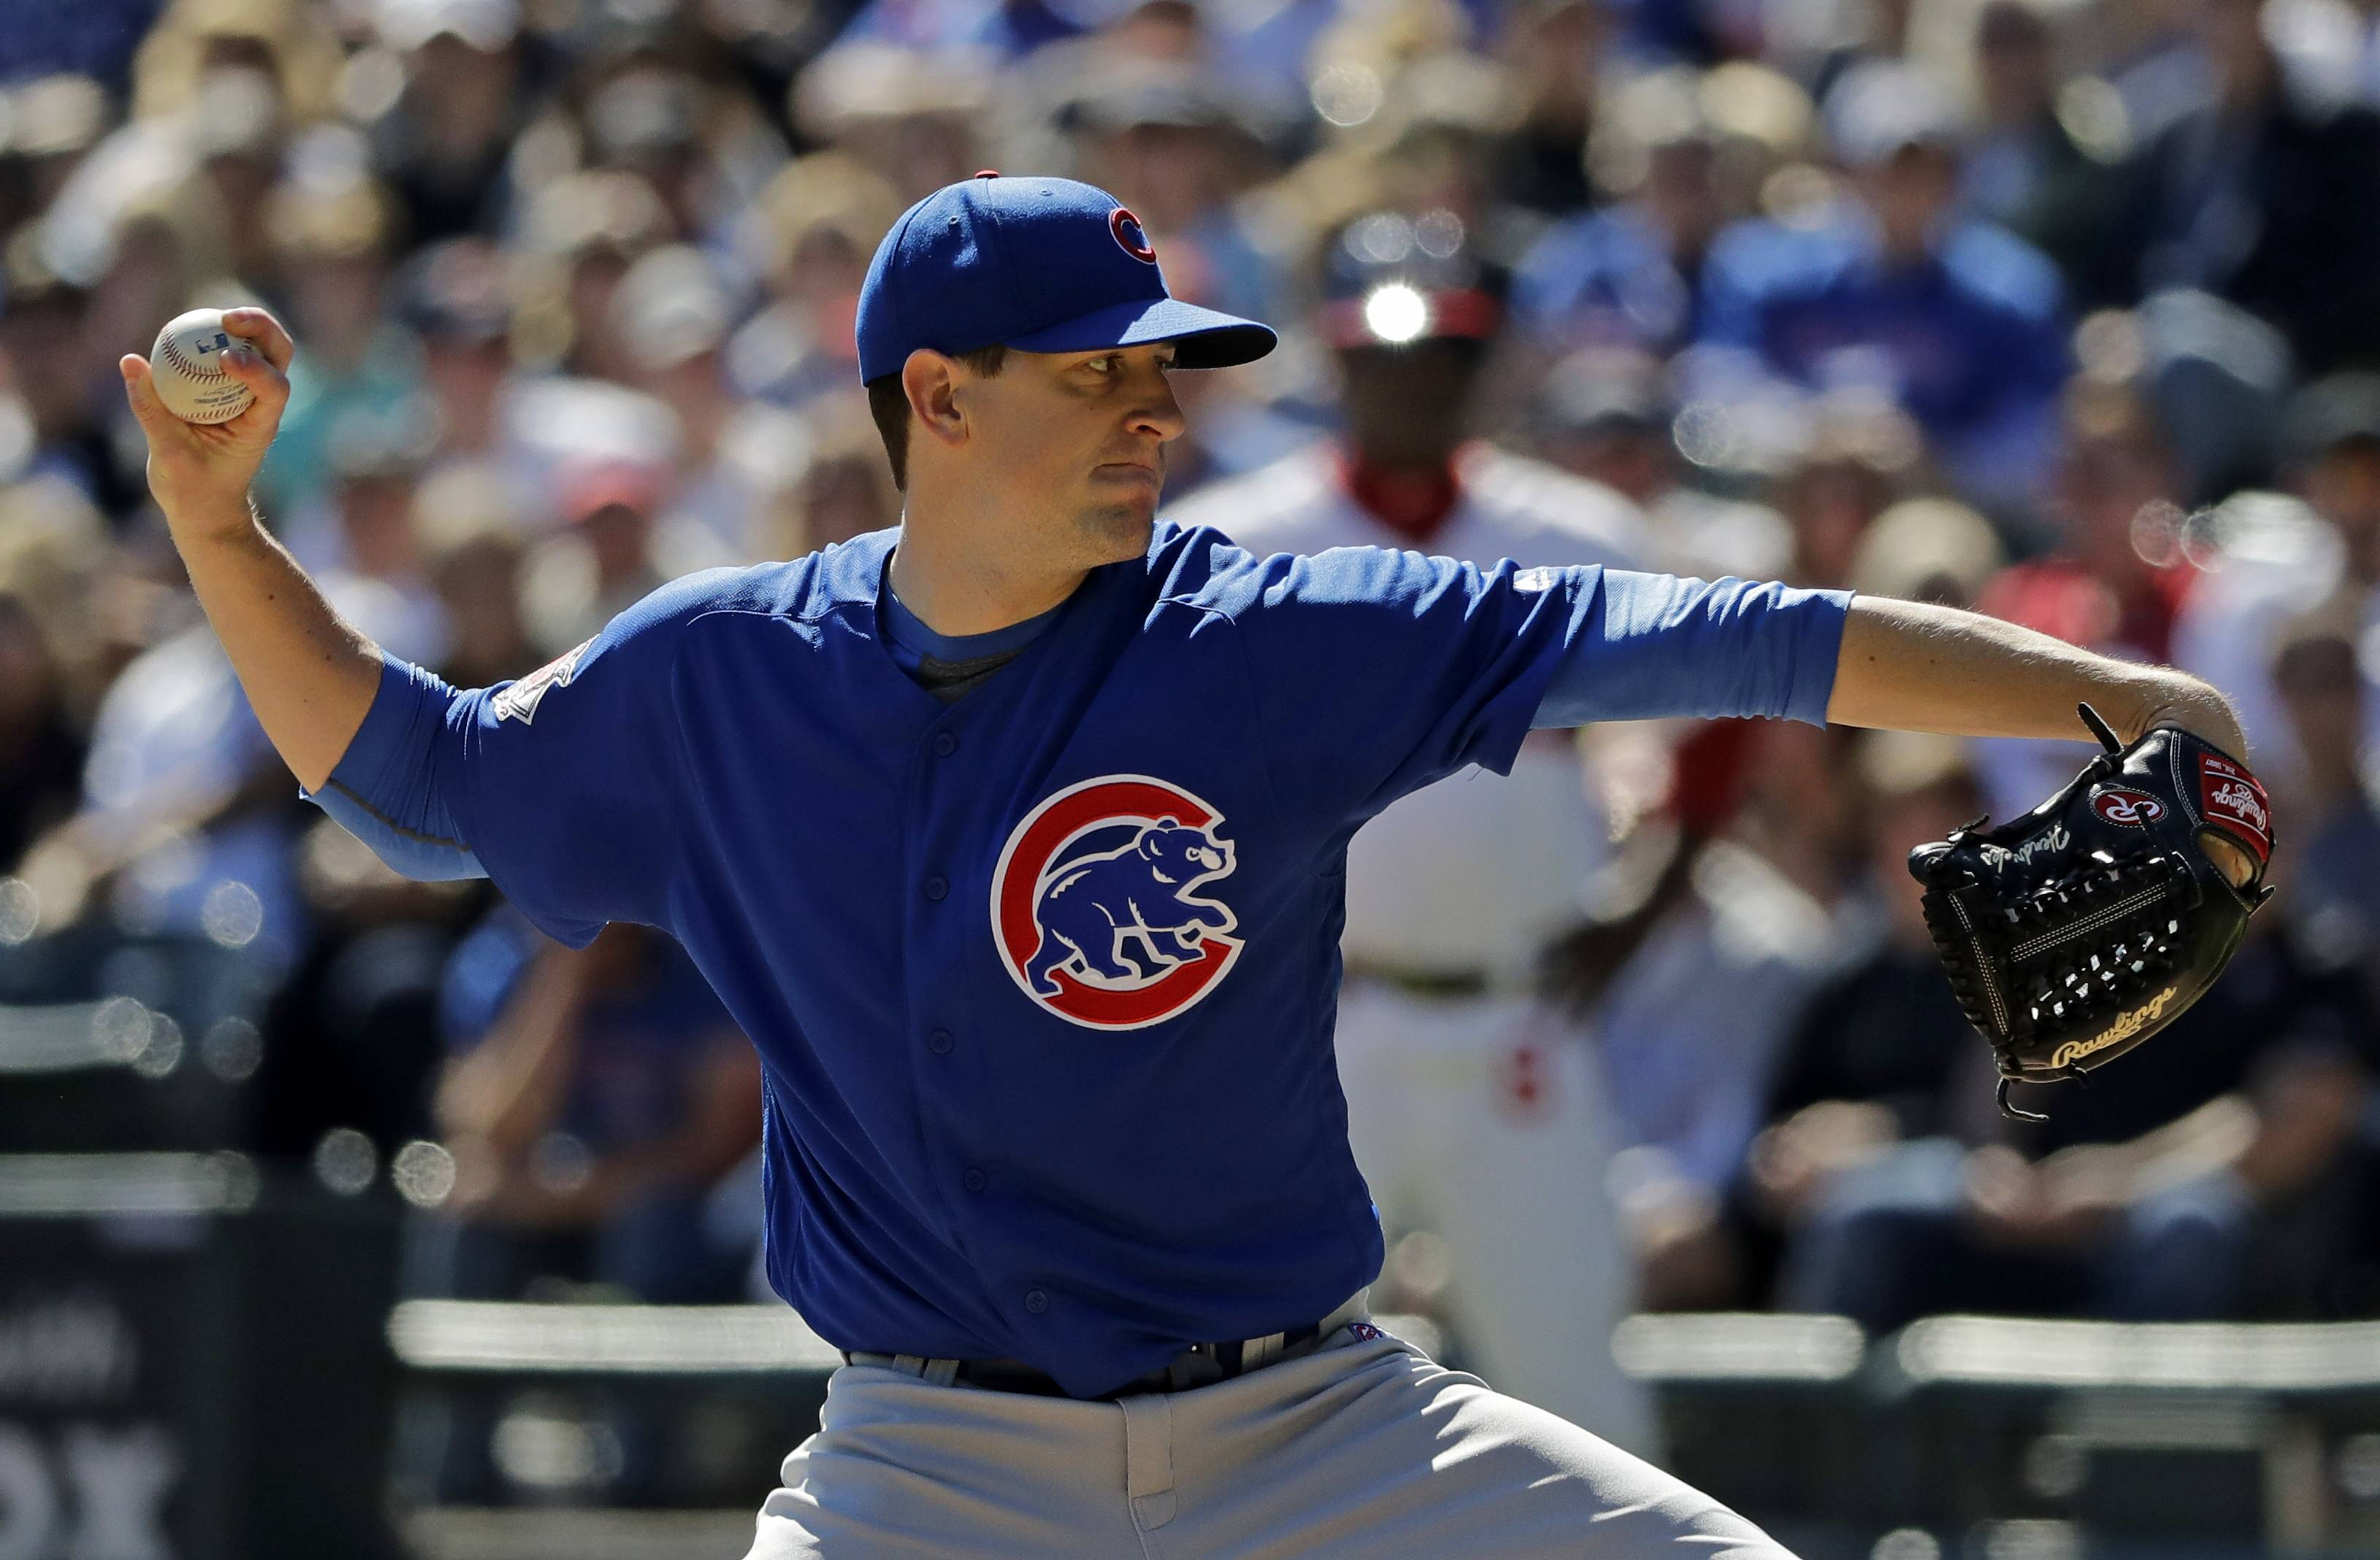 Chicago Cubs starting pitcher Kyle Hendricks throws against the Chicago White Sox during the first inning of a baseball game Sunday, Sept. 23, 2018, in Chicago.